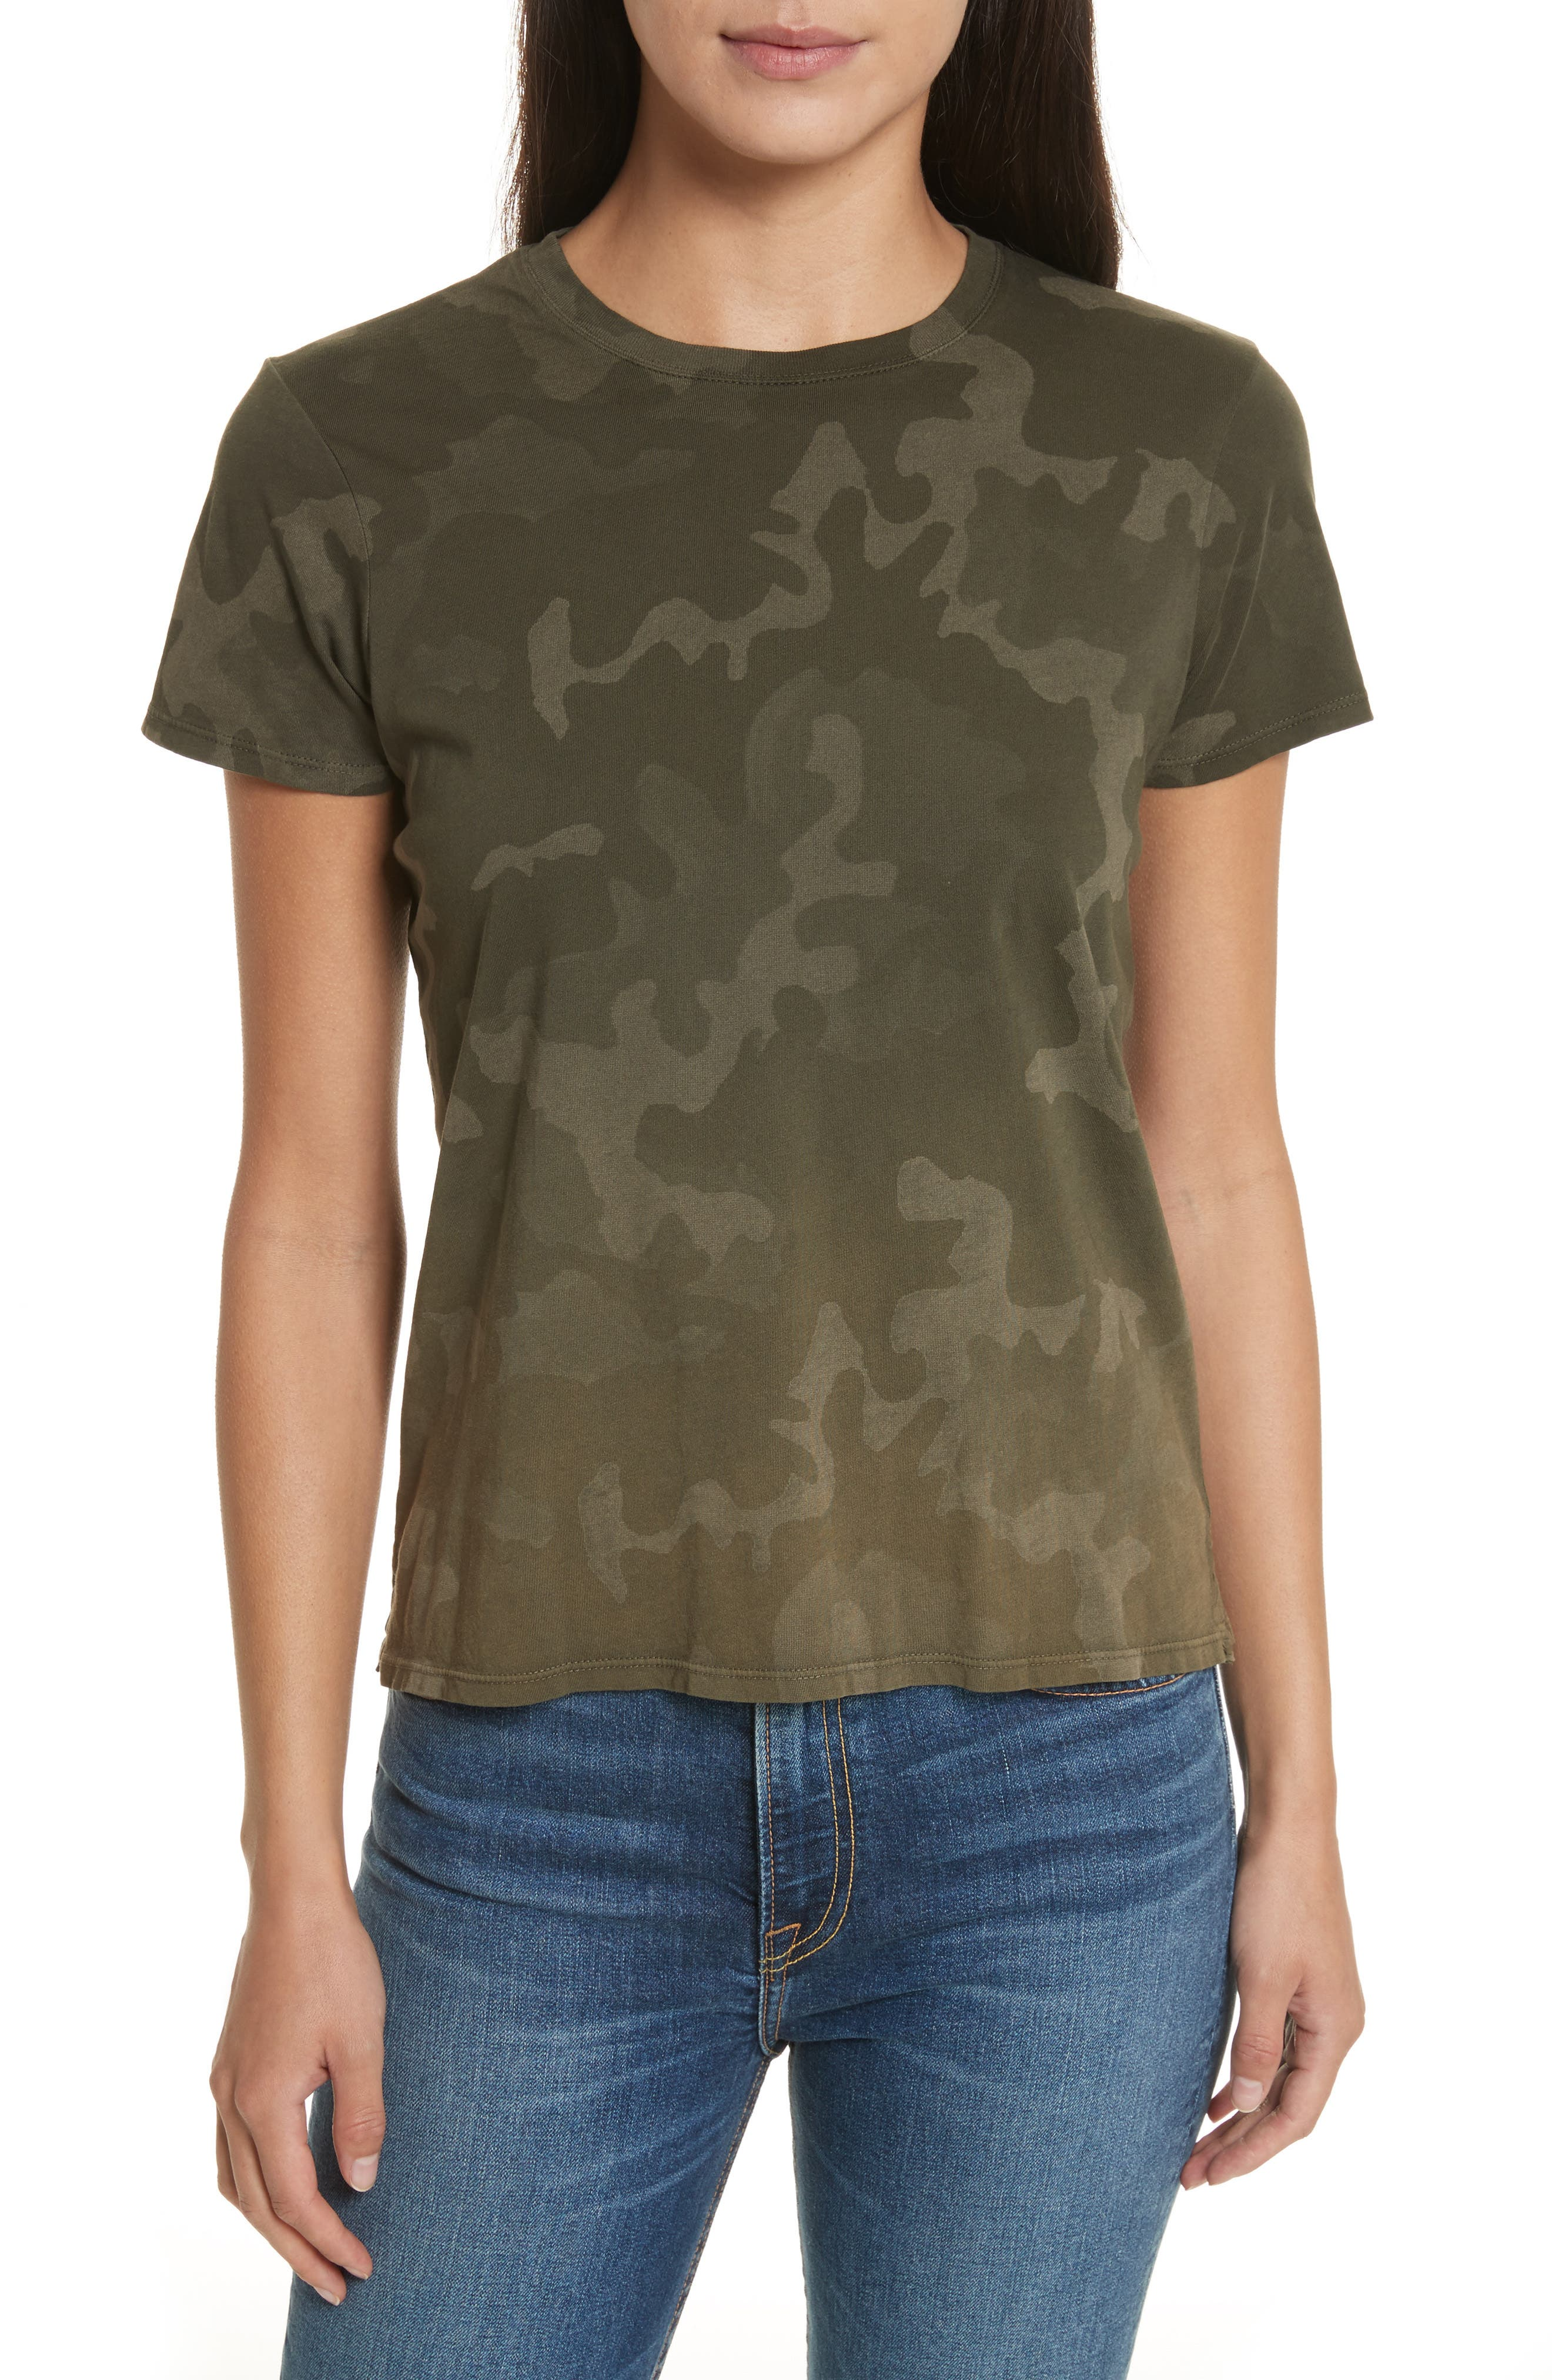 Alternate Image 1 Selected - ATM Anthony Thomas Melillo Camouflage Print Cotton Tee